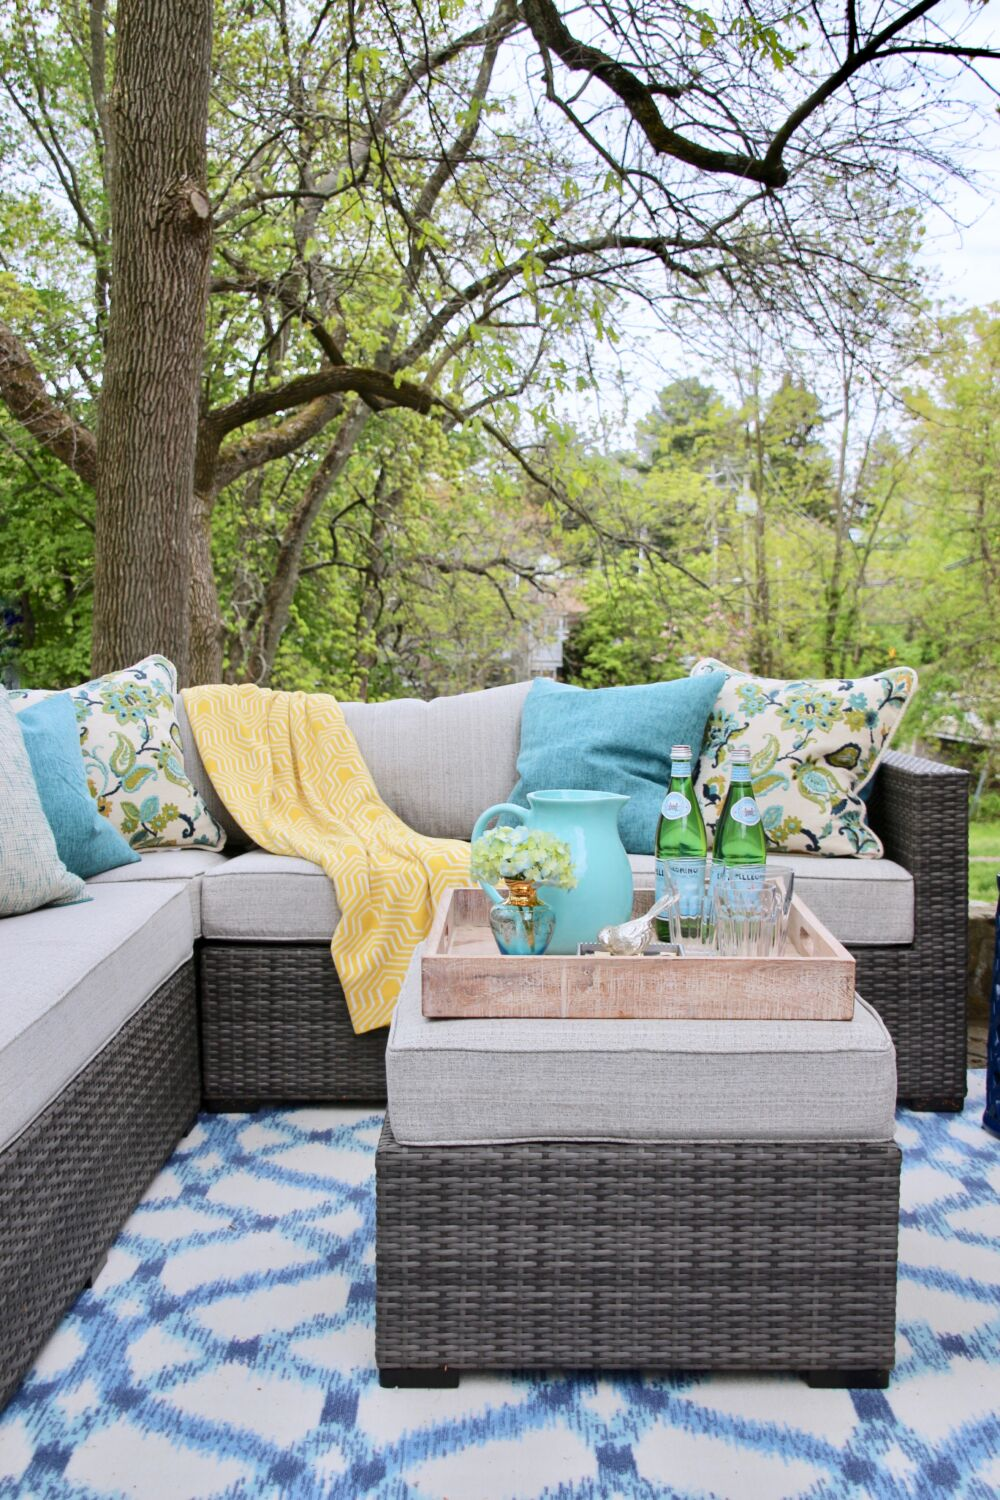 space_patio_space_solutions_outdoor_entertaining_Raymour_flanigan_sofa_homegood_pillows_turquoise_ottoman_tray